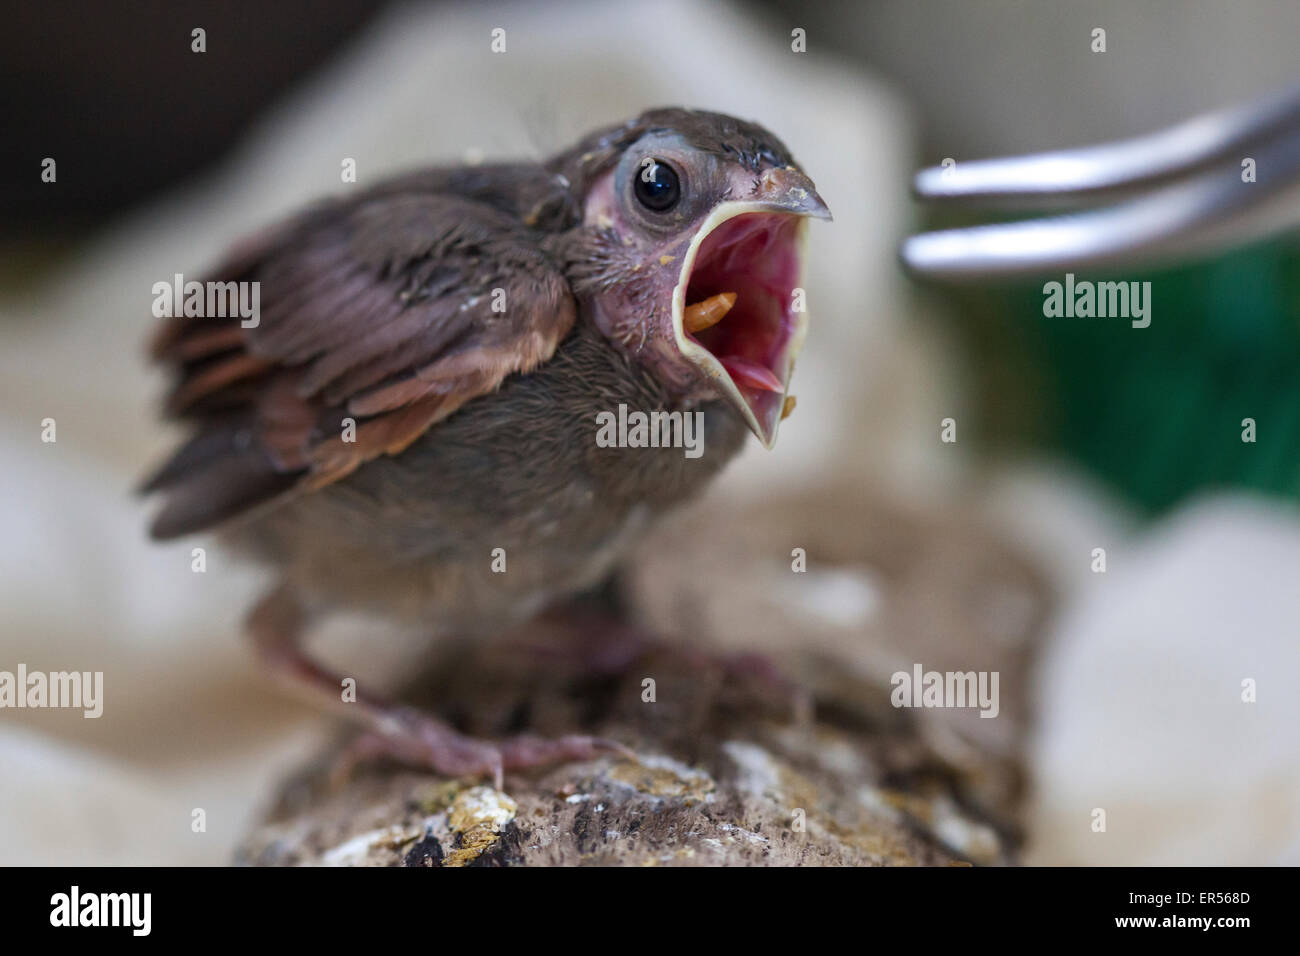 Baby Cod Baby Bird At Wild Care Cape Cod Stock Photo 83093261 Alamy